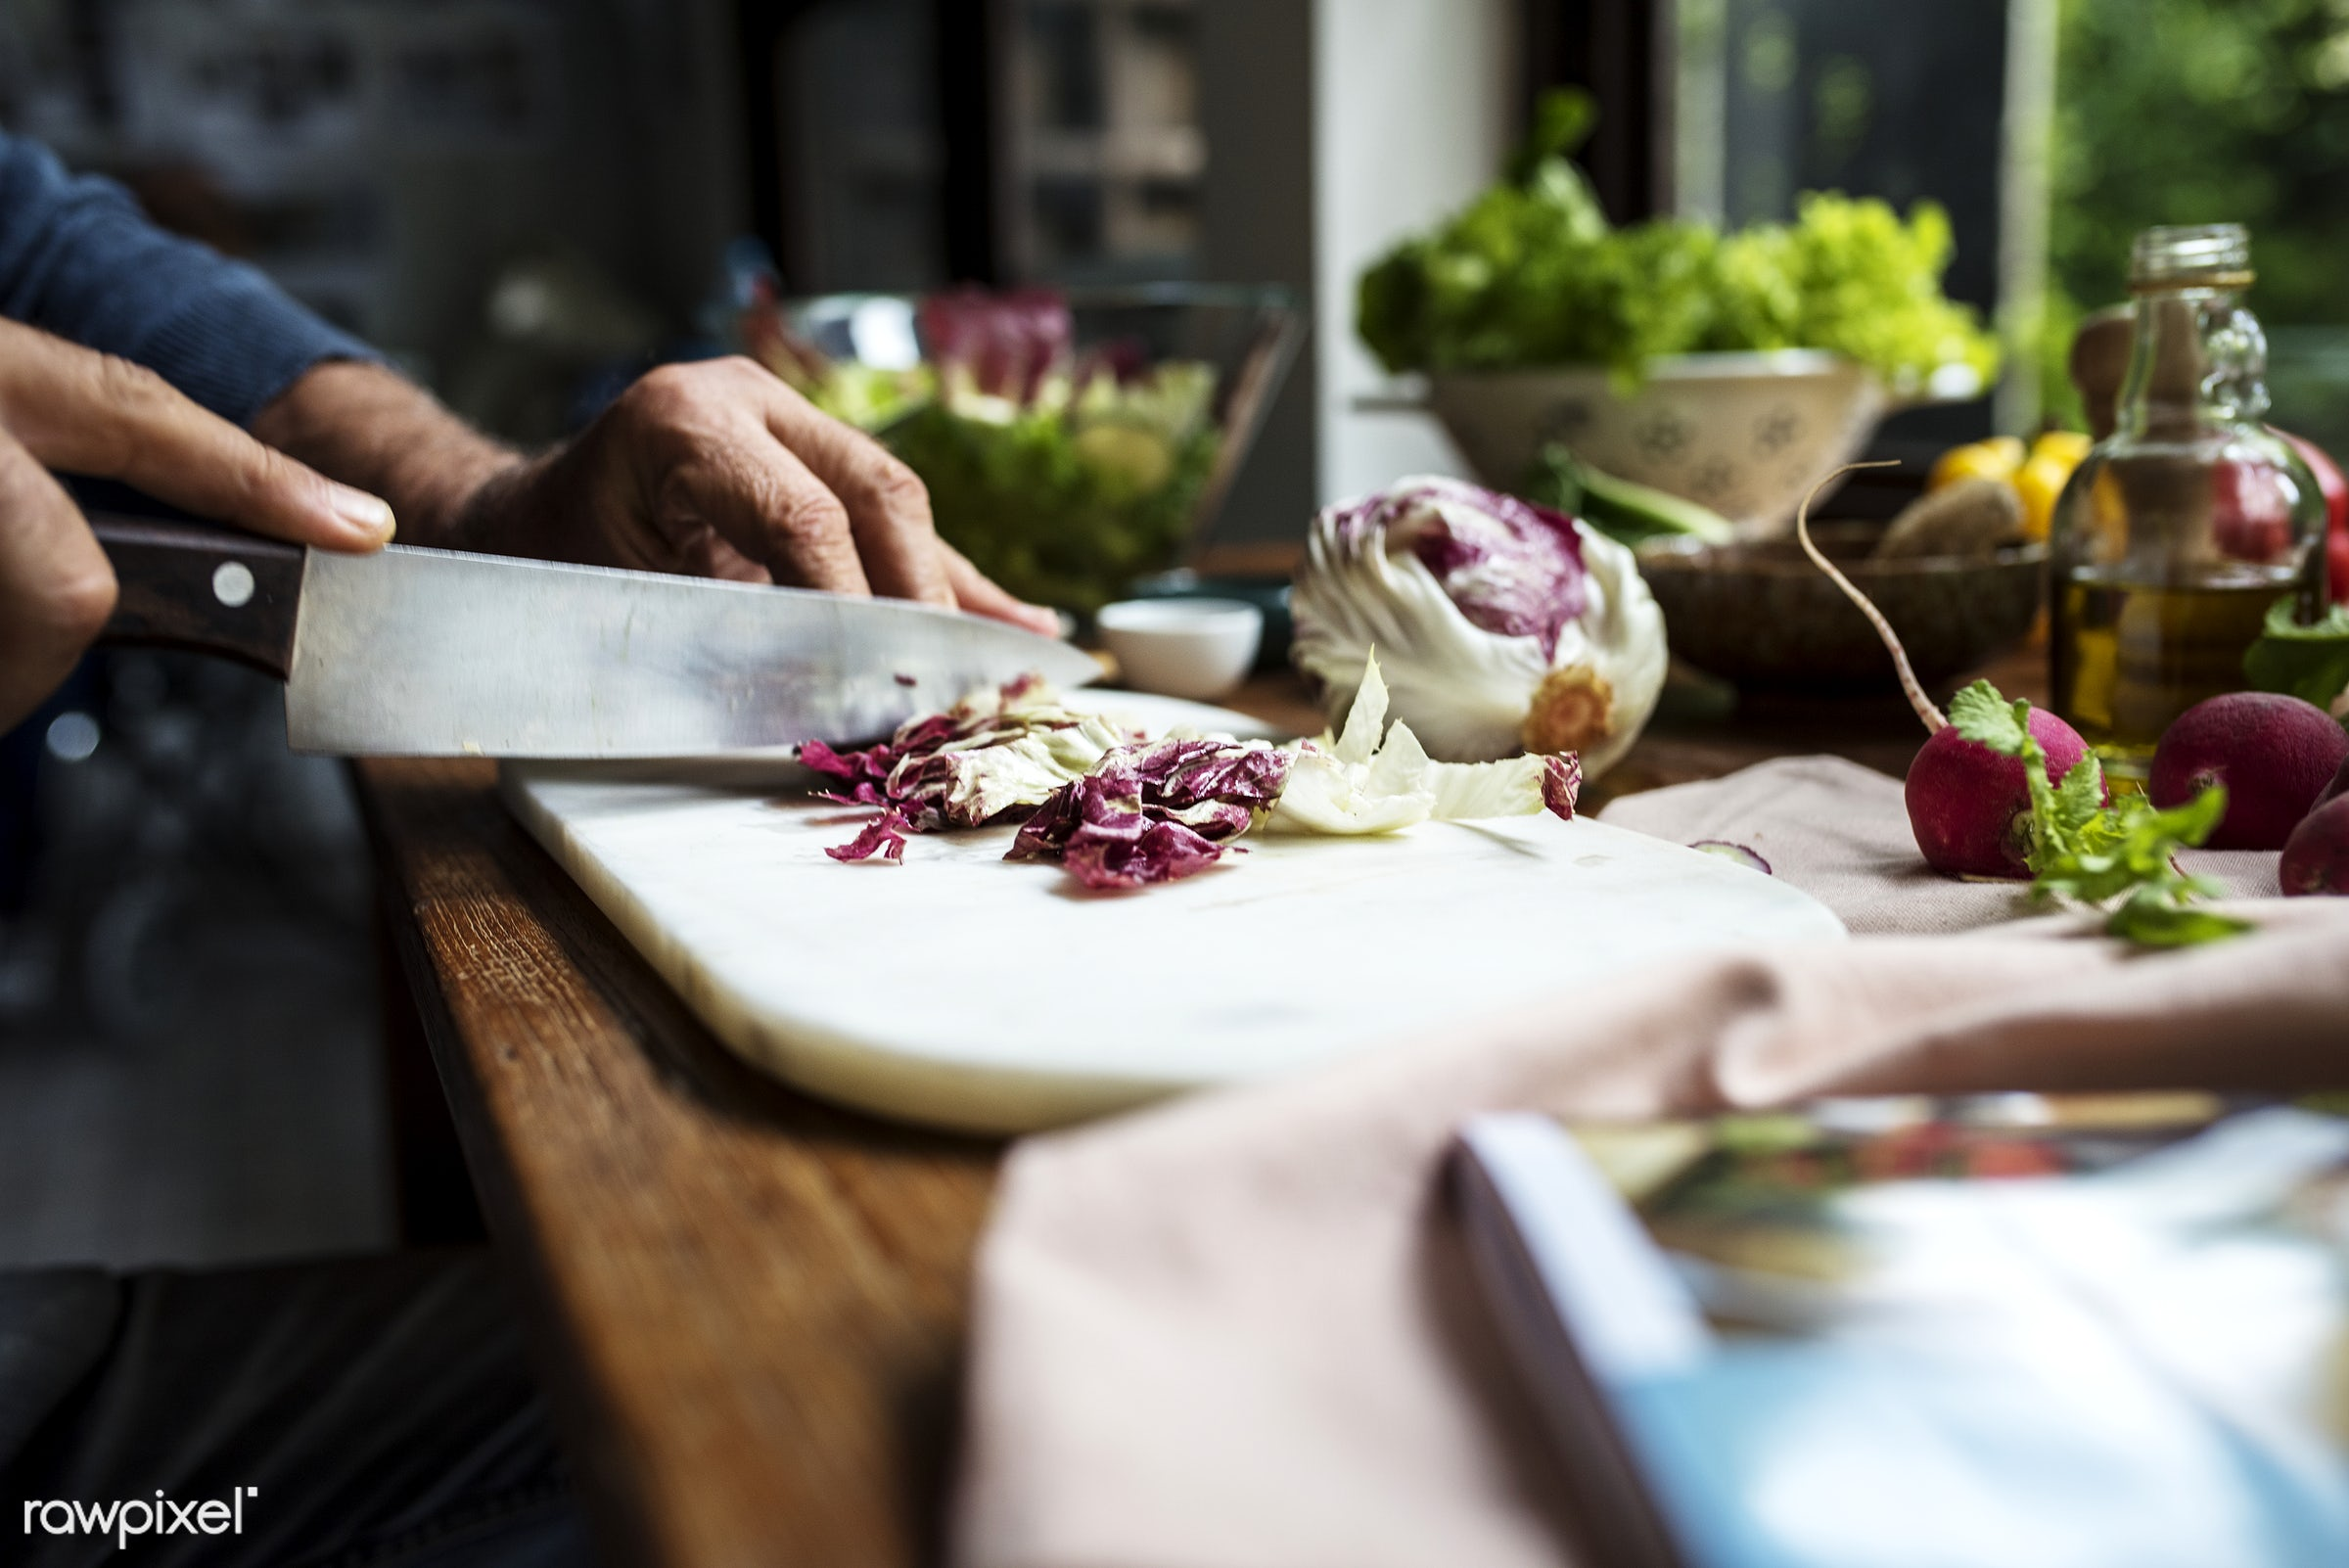 diverse, real, hands, fresh, cooking, various, closeup, meal, superfood, cut board, chopping, prepare, cutting, radicchio,...